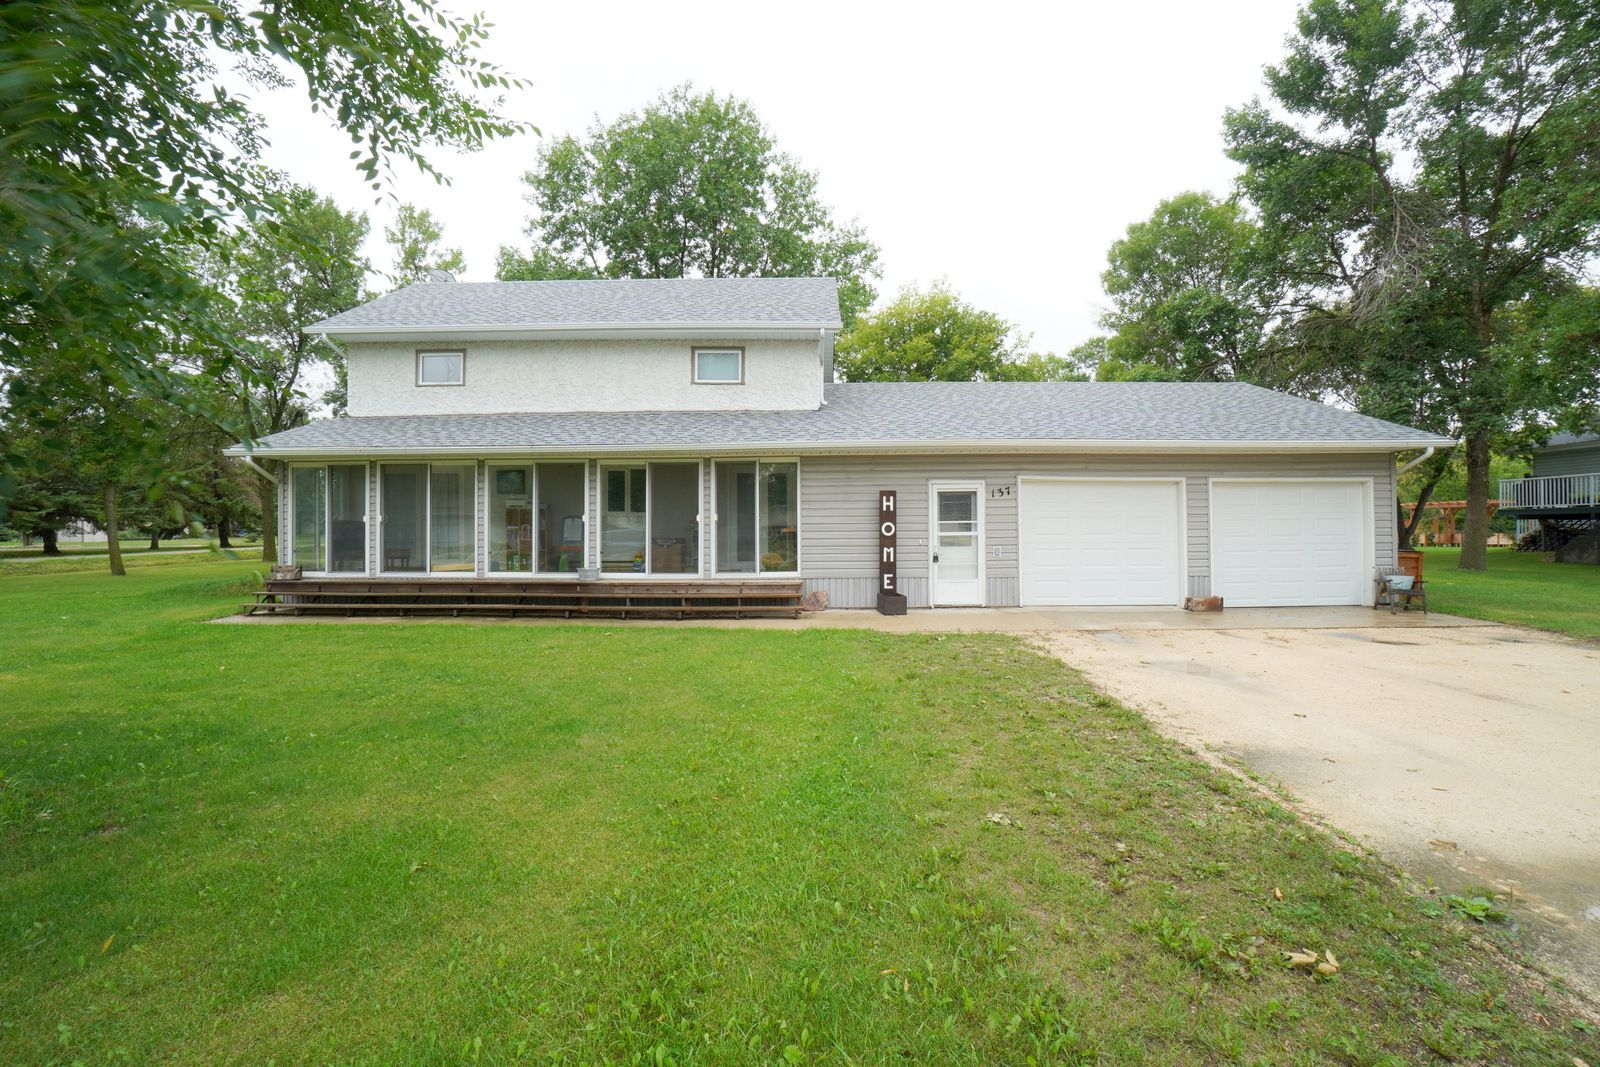 Main Photo: 137 Jobin Ave in St Claude: House for sale : MLS®# 202121281